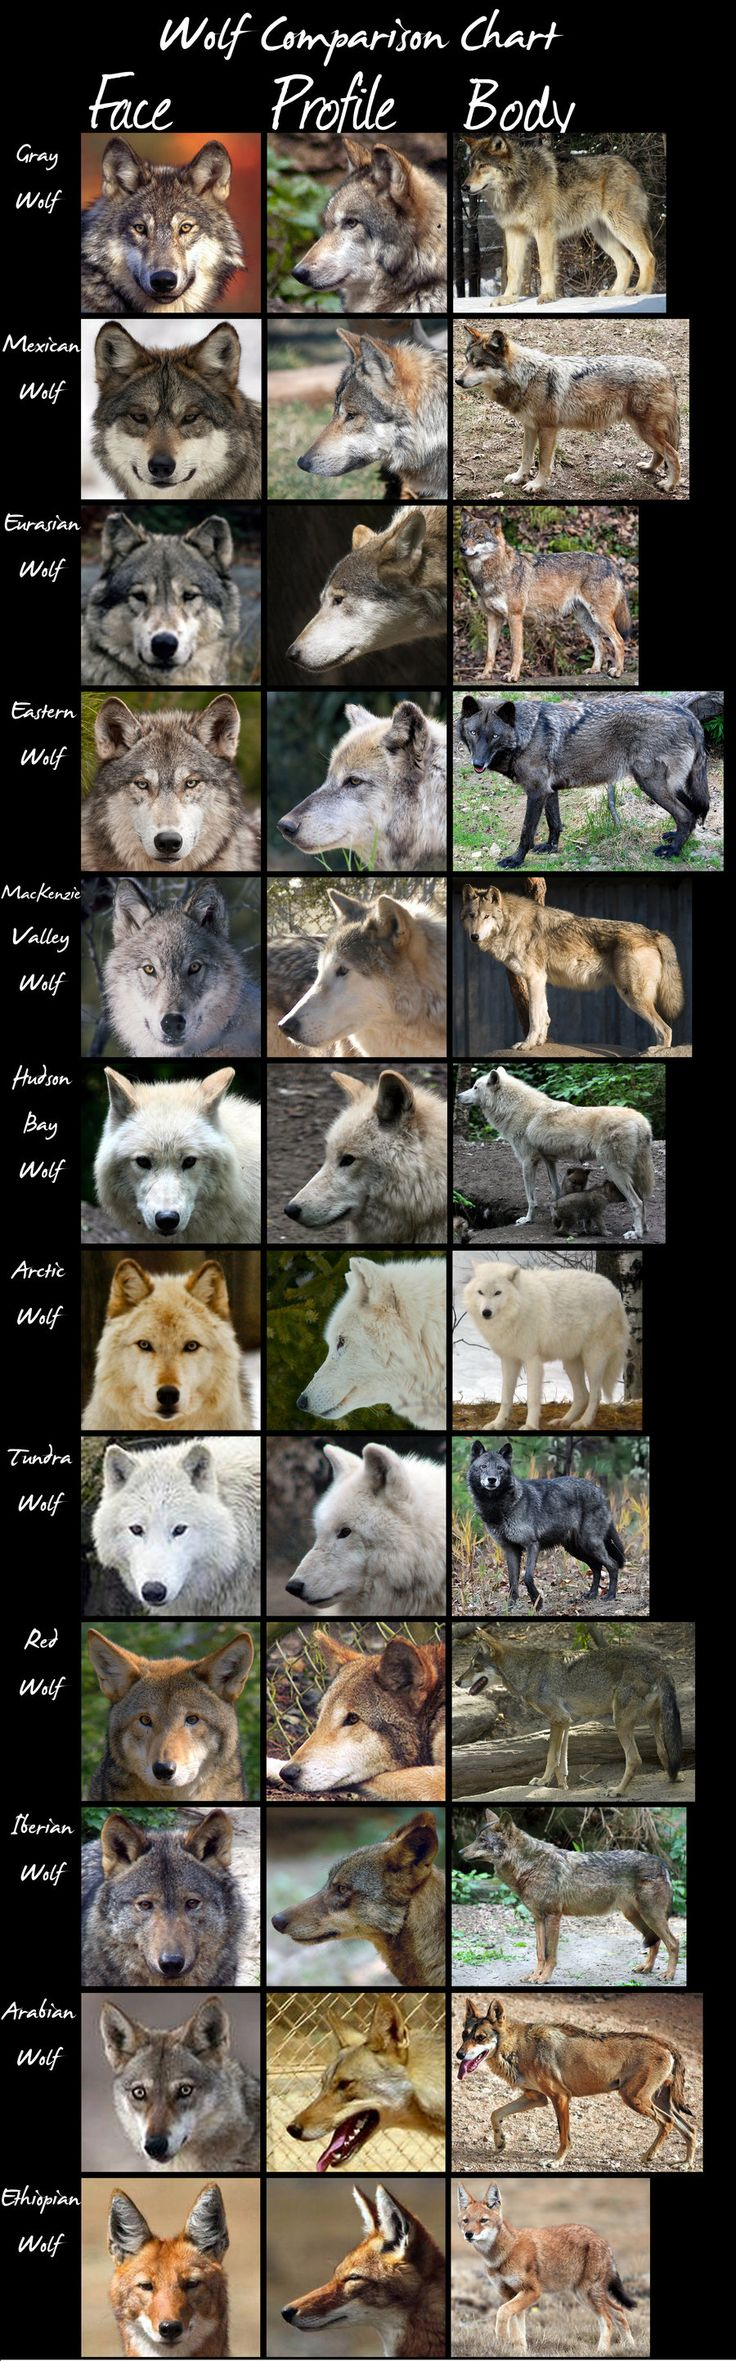 Wolf Comparison Chart-HUGE by HDevers.deviantart.com on @deviantART